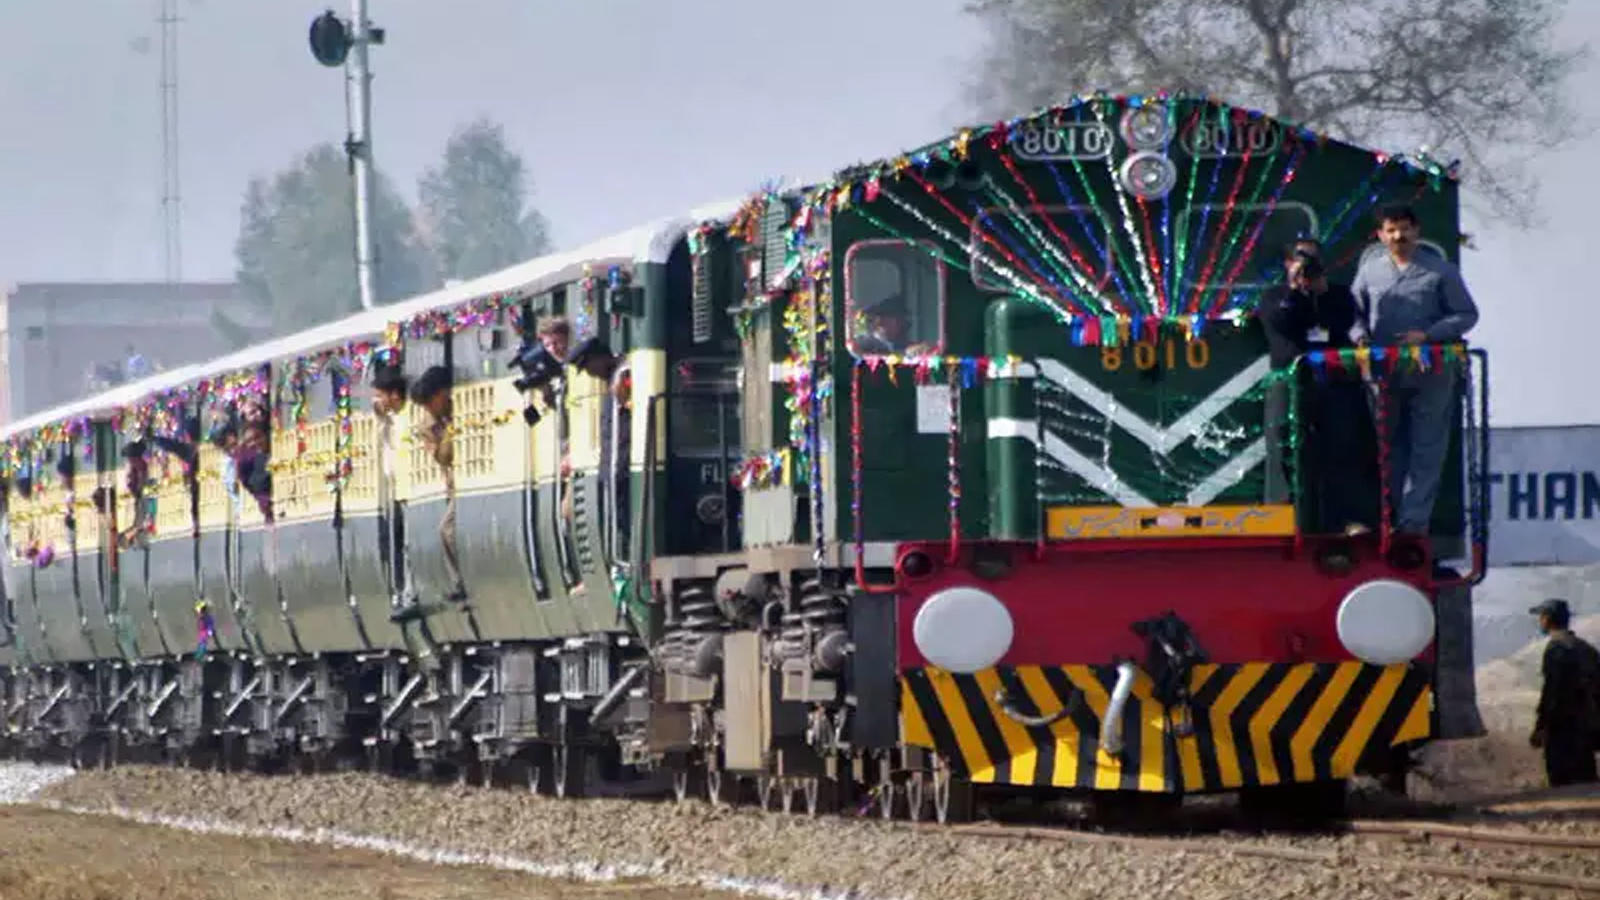 lahore-wagah-train-service-to-be-restored-after-22-years-today